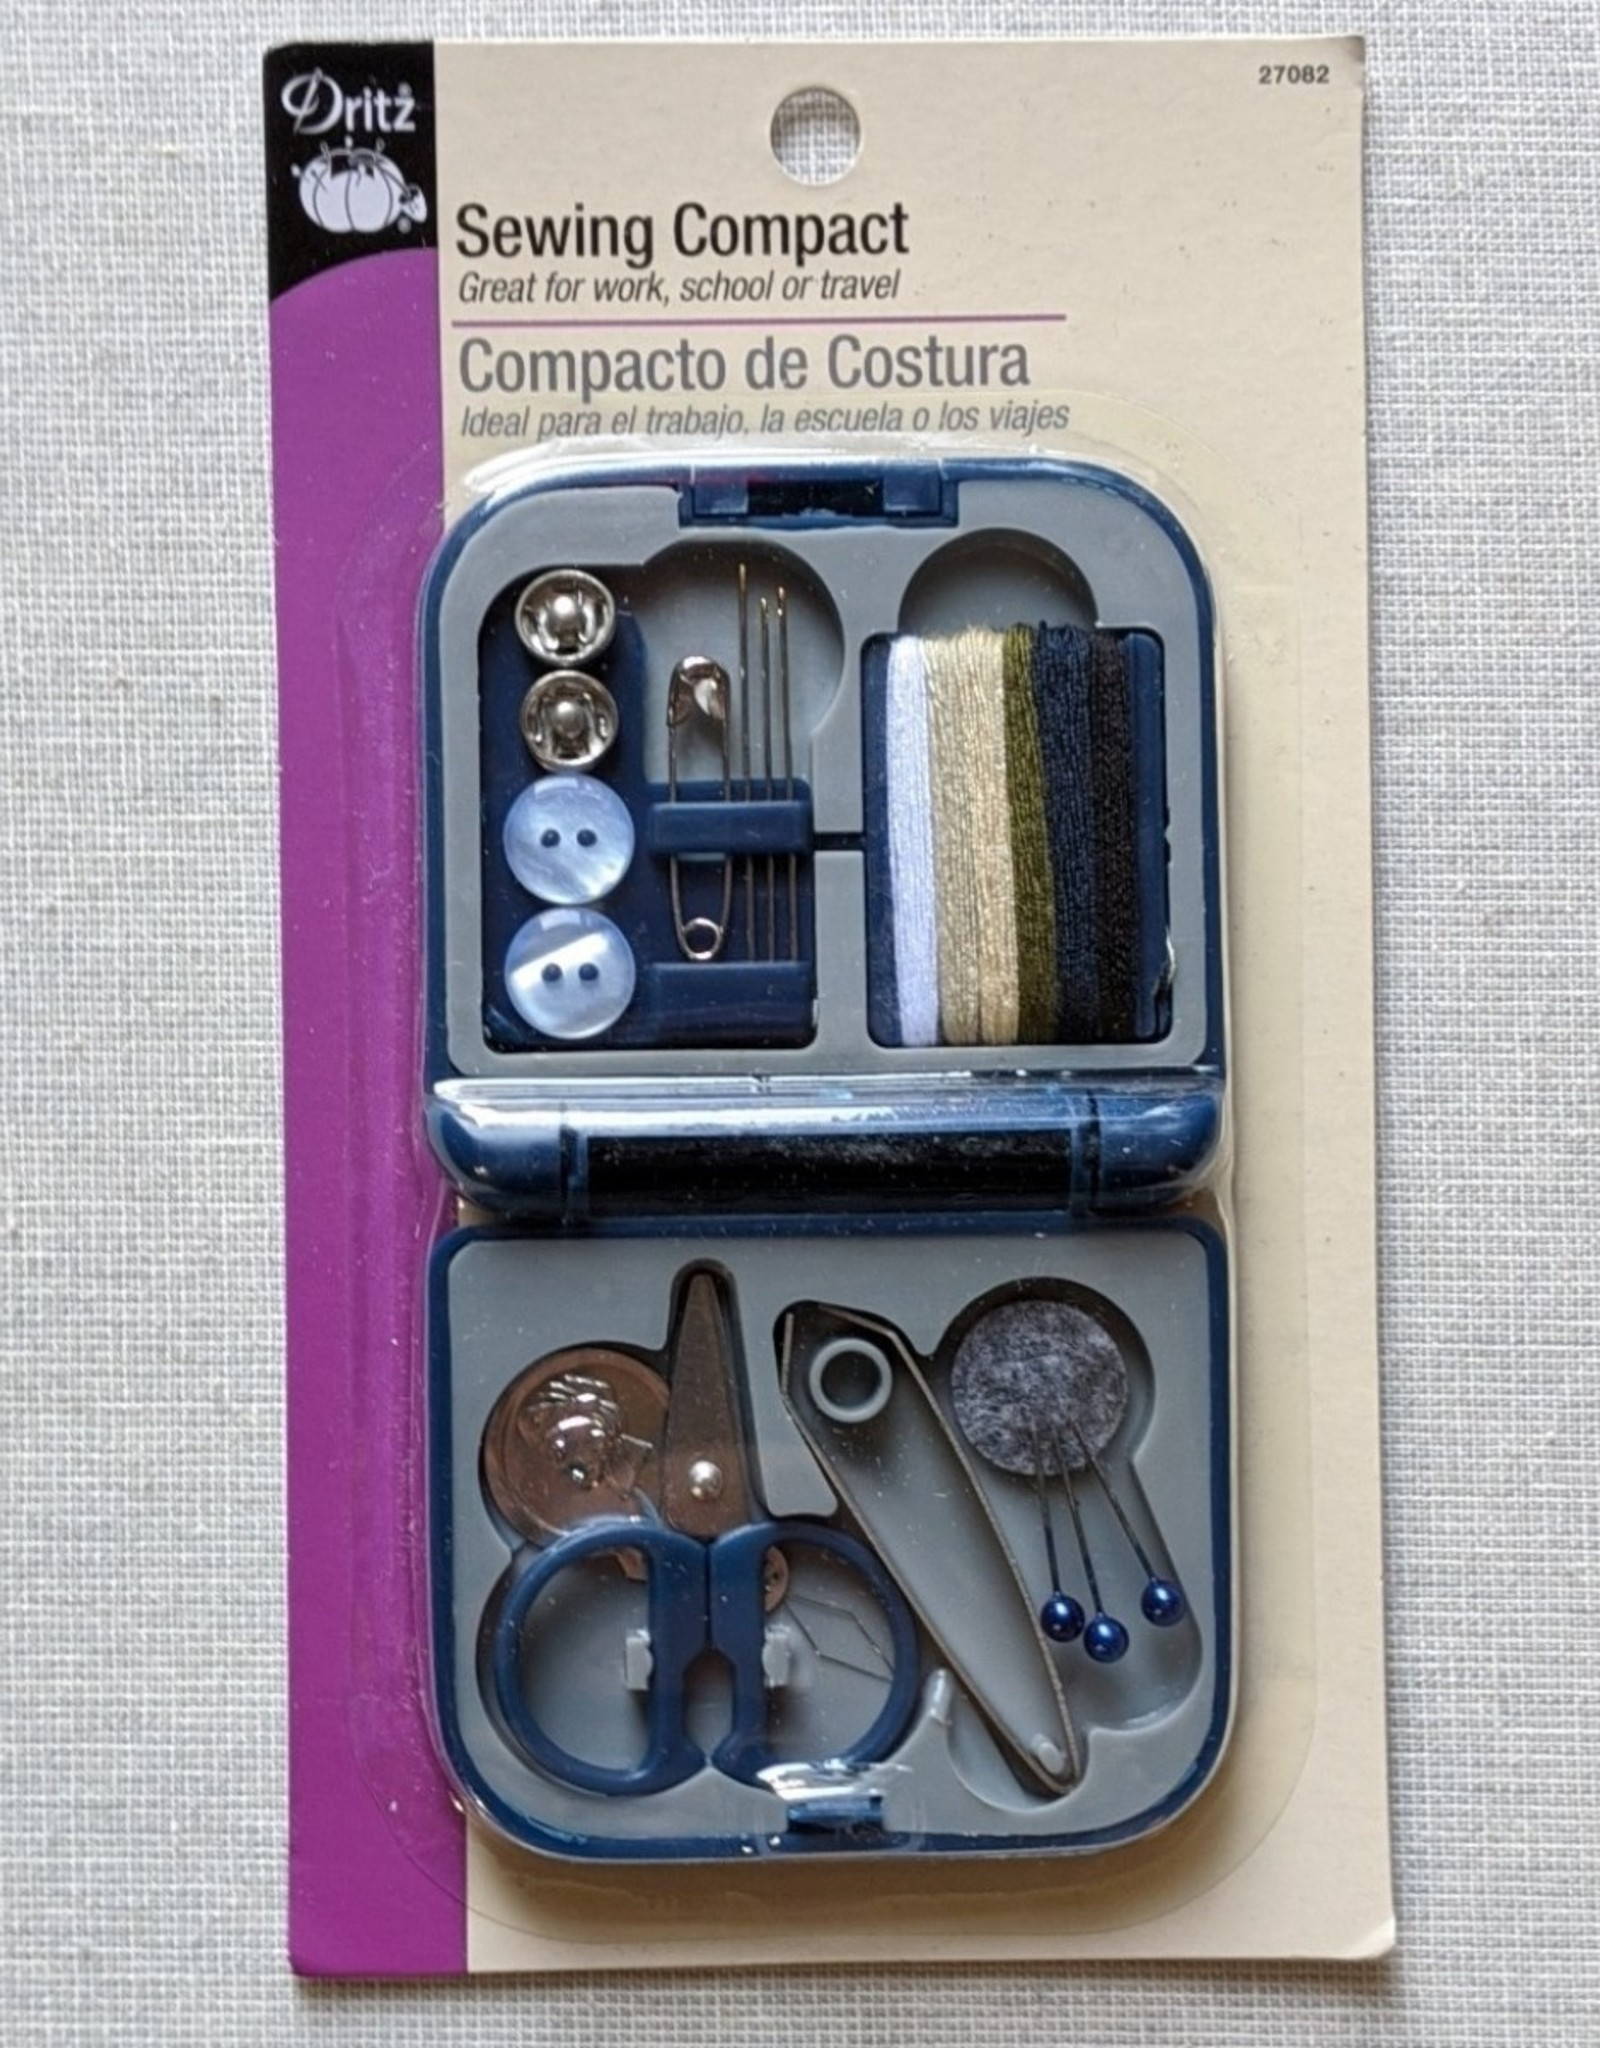 Bryson Dritz Sewing Compact